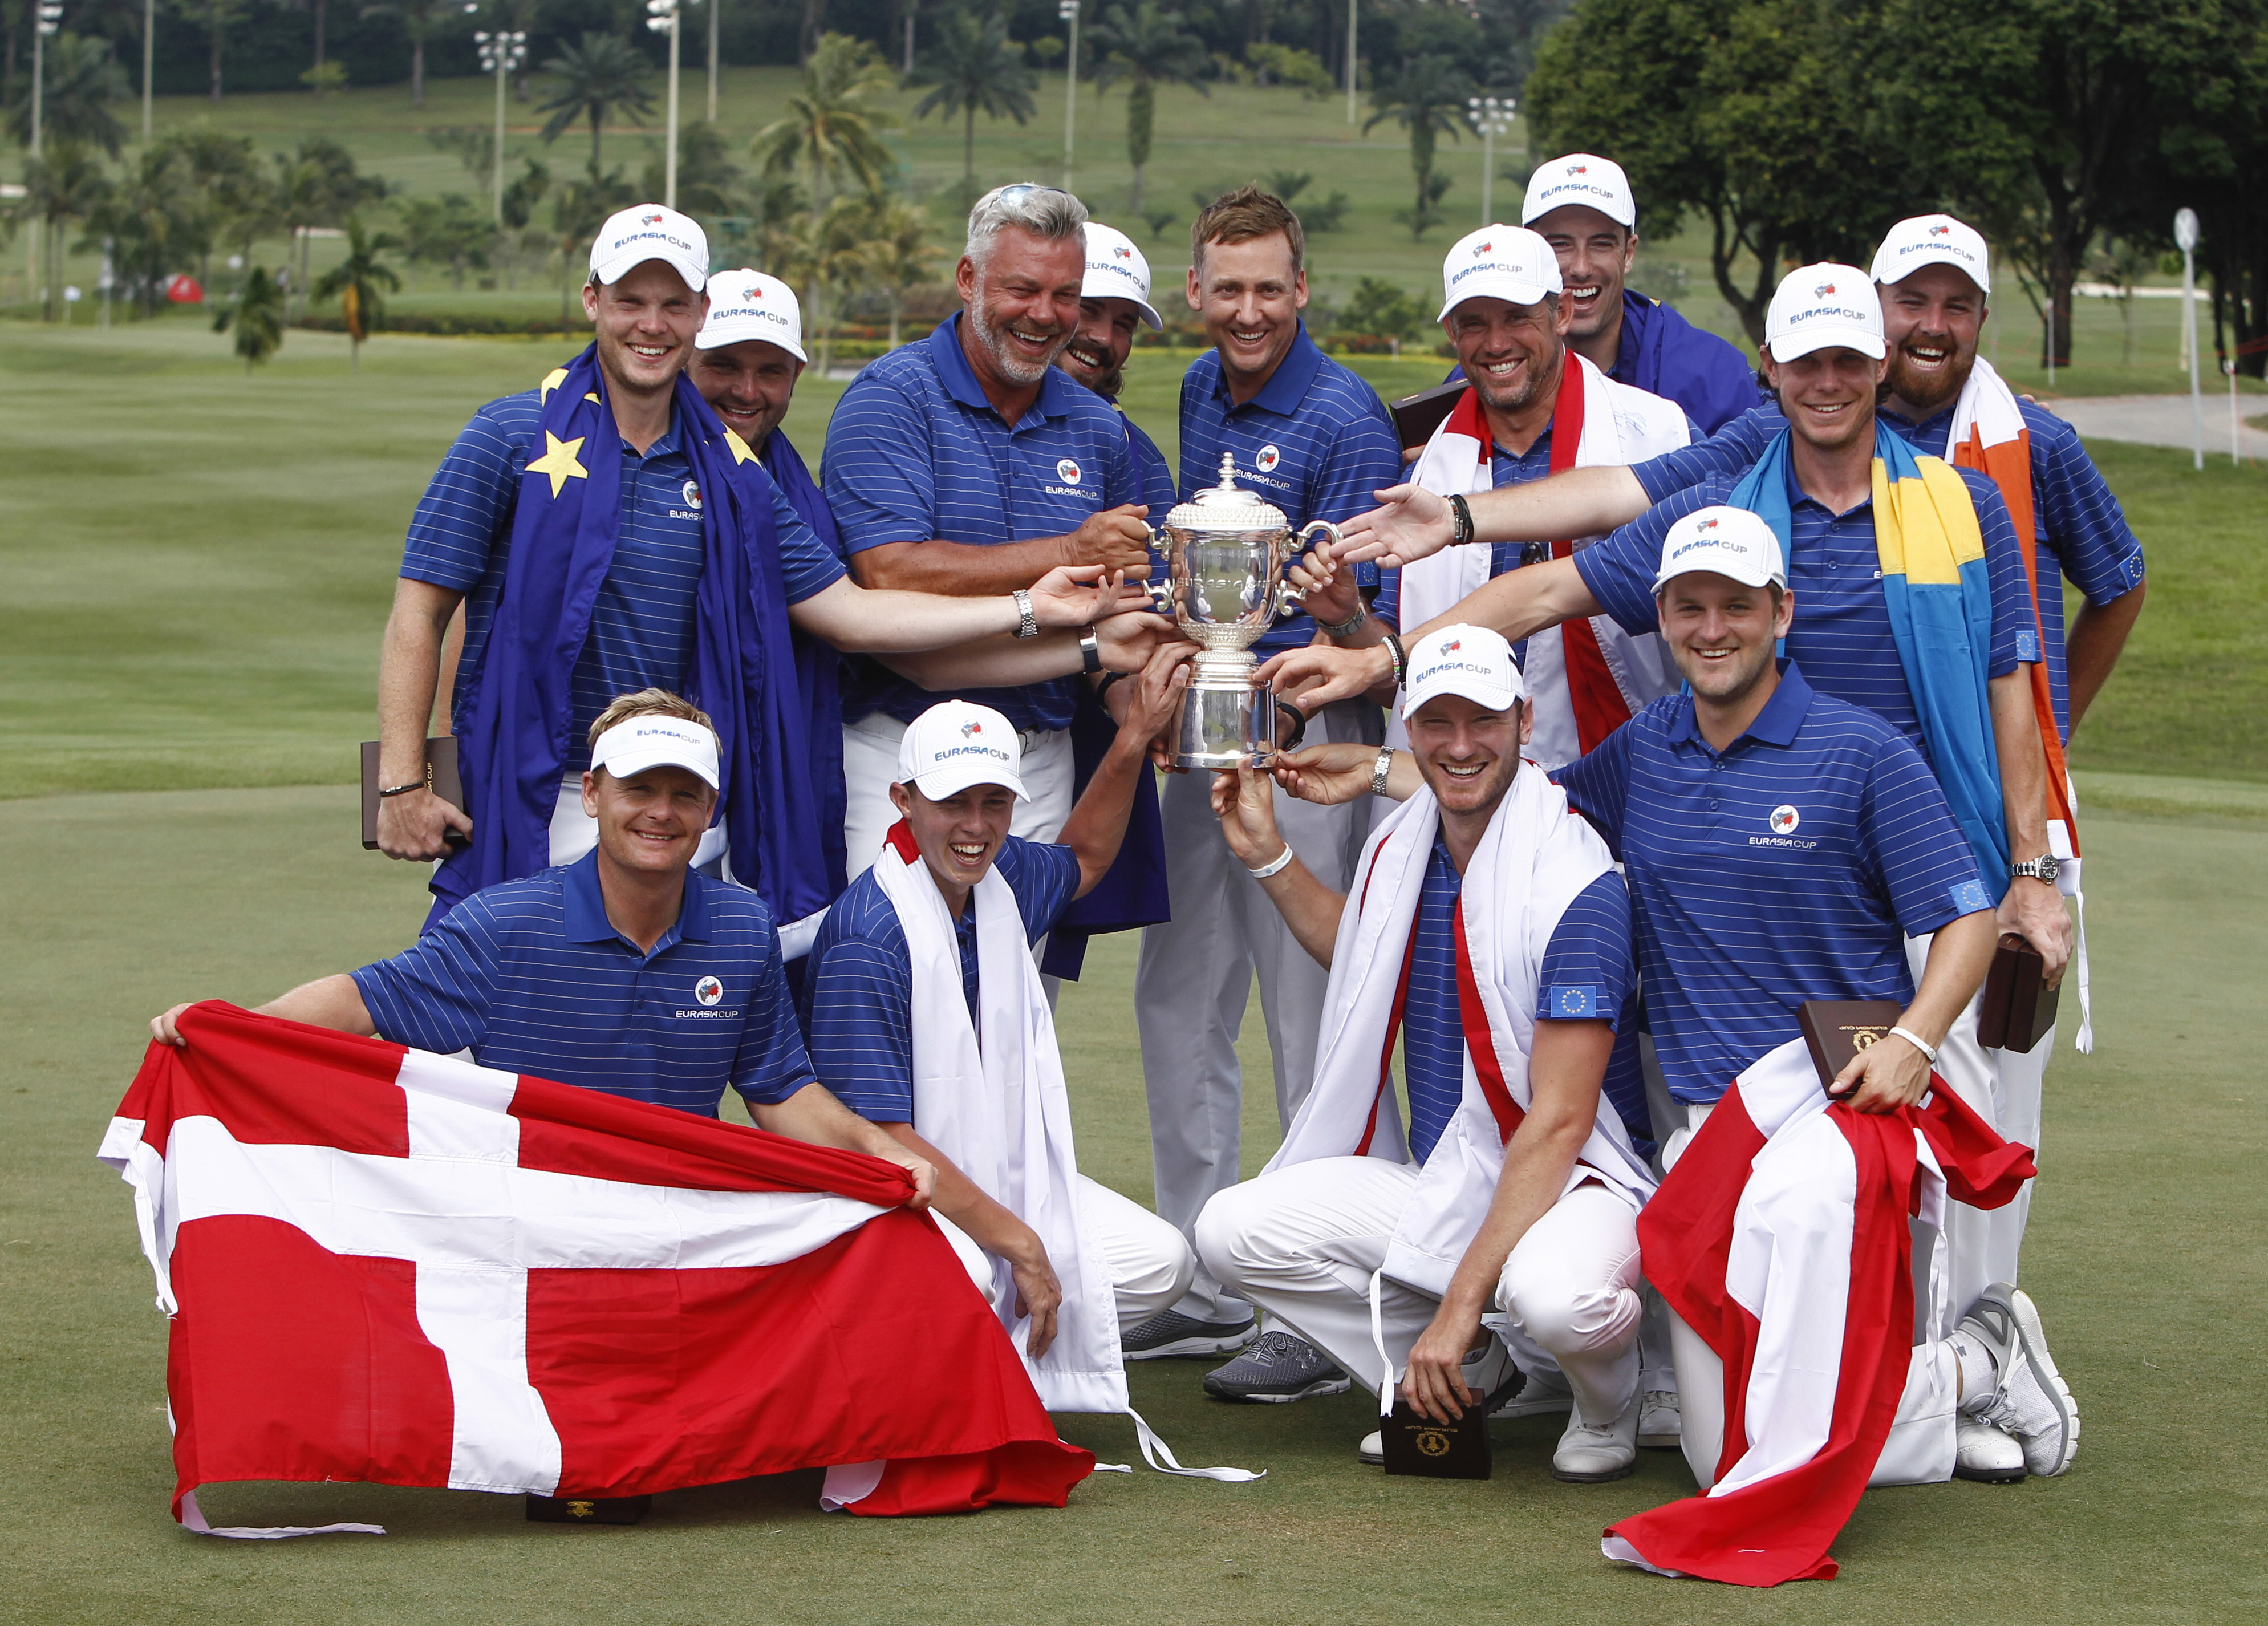 Members of Team Europe, top row left to right, Danny Willet of England, Andy Sullivan of England, Darren Clarke of Northern Ireland, Victor Dubuisson of France, Ian Poulter of England, Lee Westwood of England, Ross Fisher of England, Kristoffer Broberg of